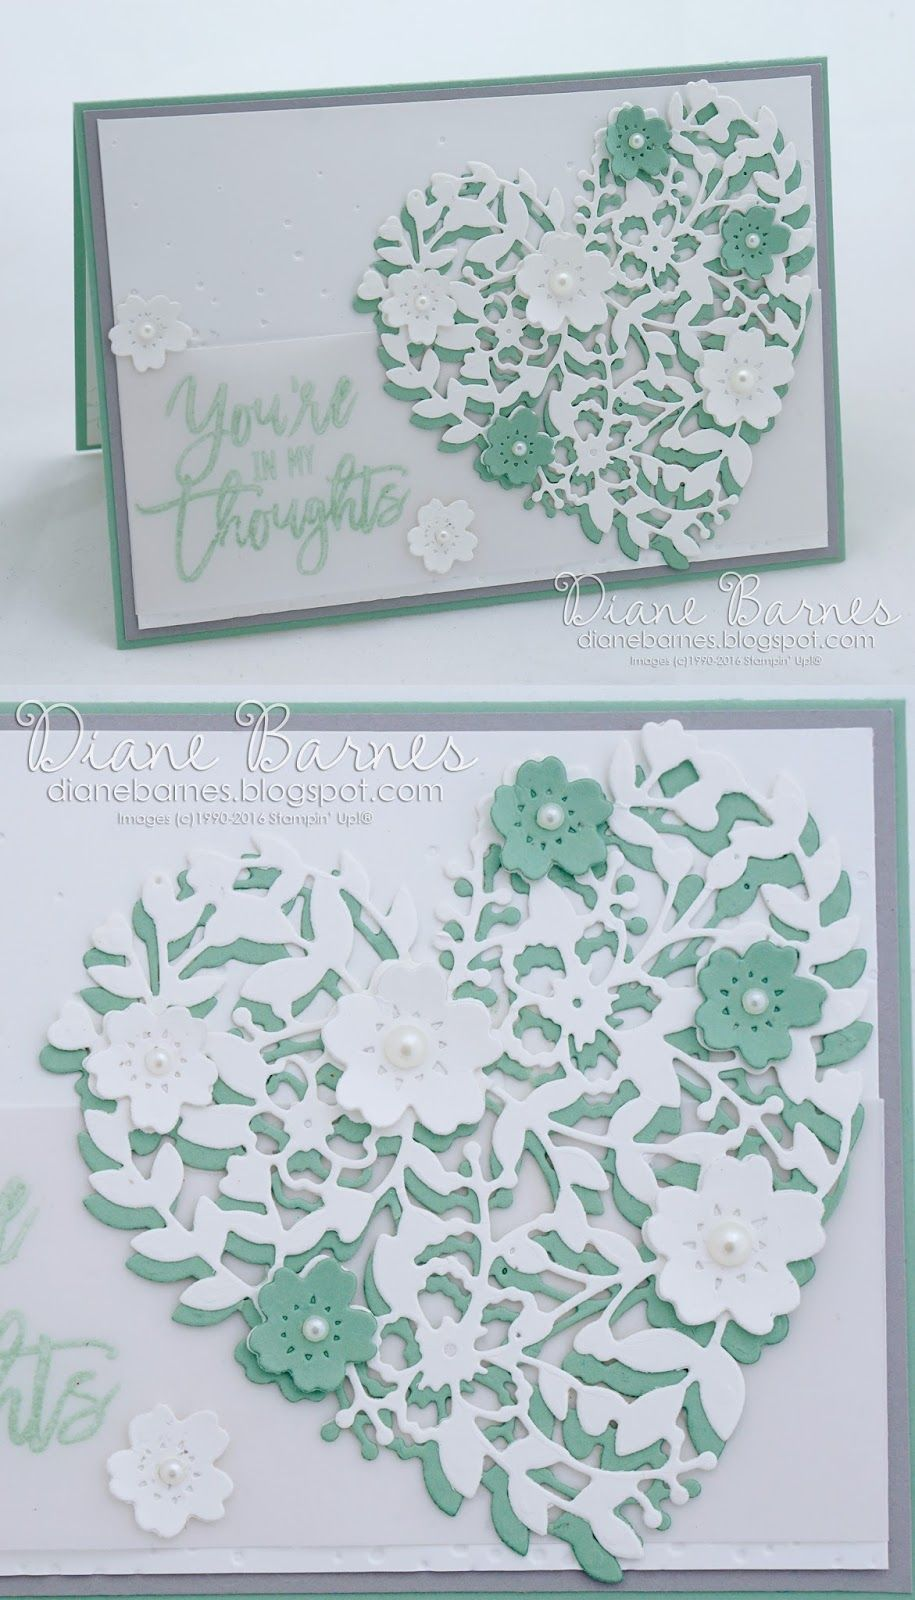 Handmade Sympathy Card Using Stampin Up Bloomin Heart Dies Love Stamp Set Thoughtful Branches By Di Barnes Colourmehappy 2016 17 Annual